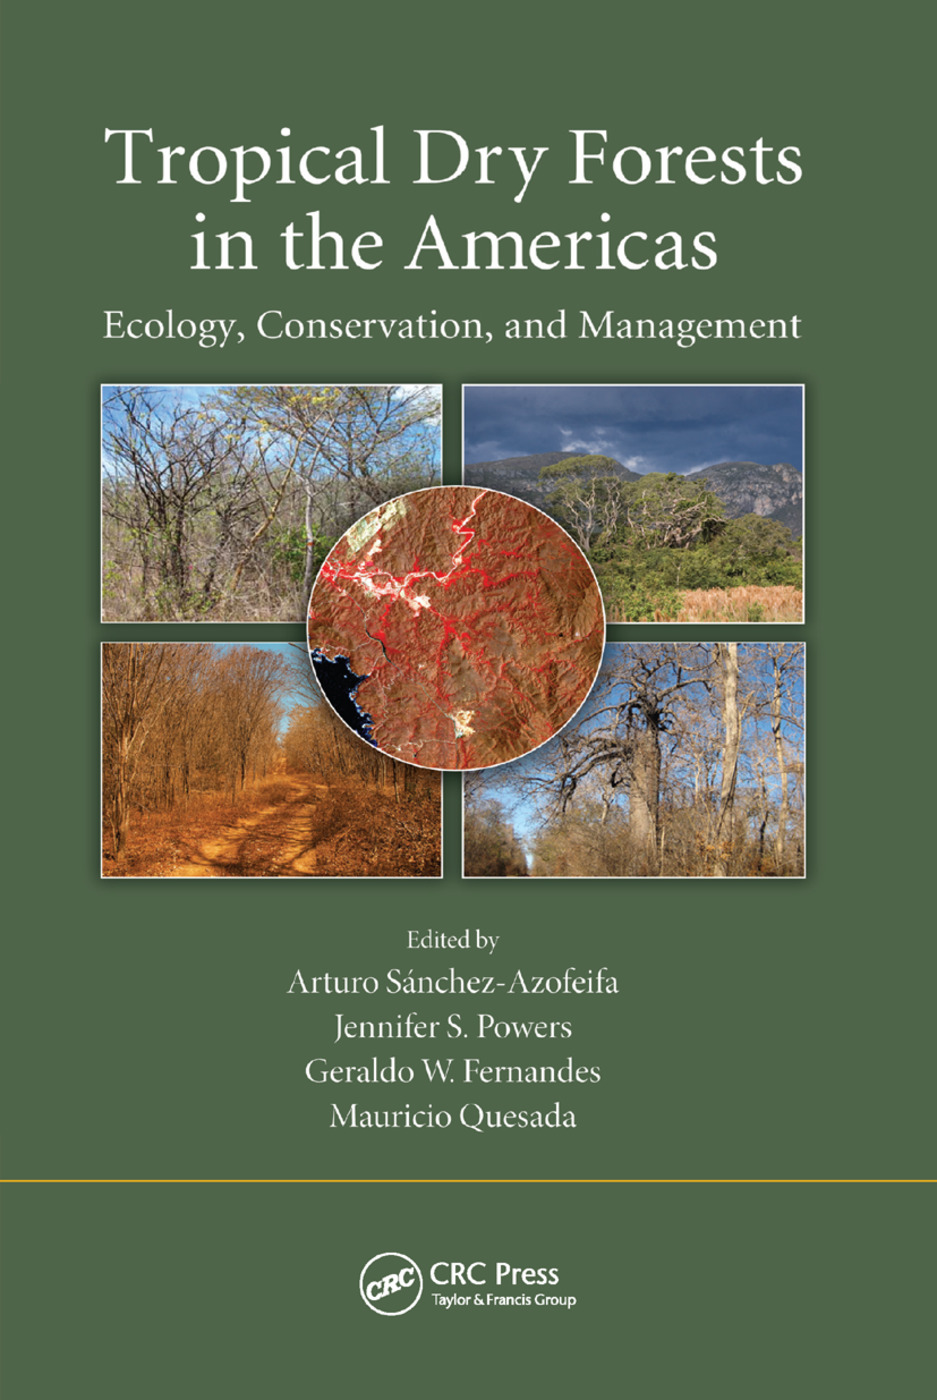 Tropical Dry Forests in the Americas: Ecology, Conservation, and Management book cover